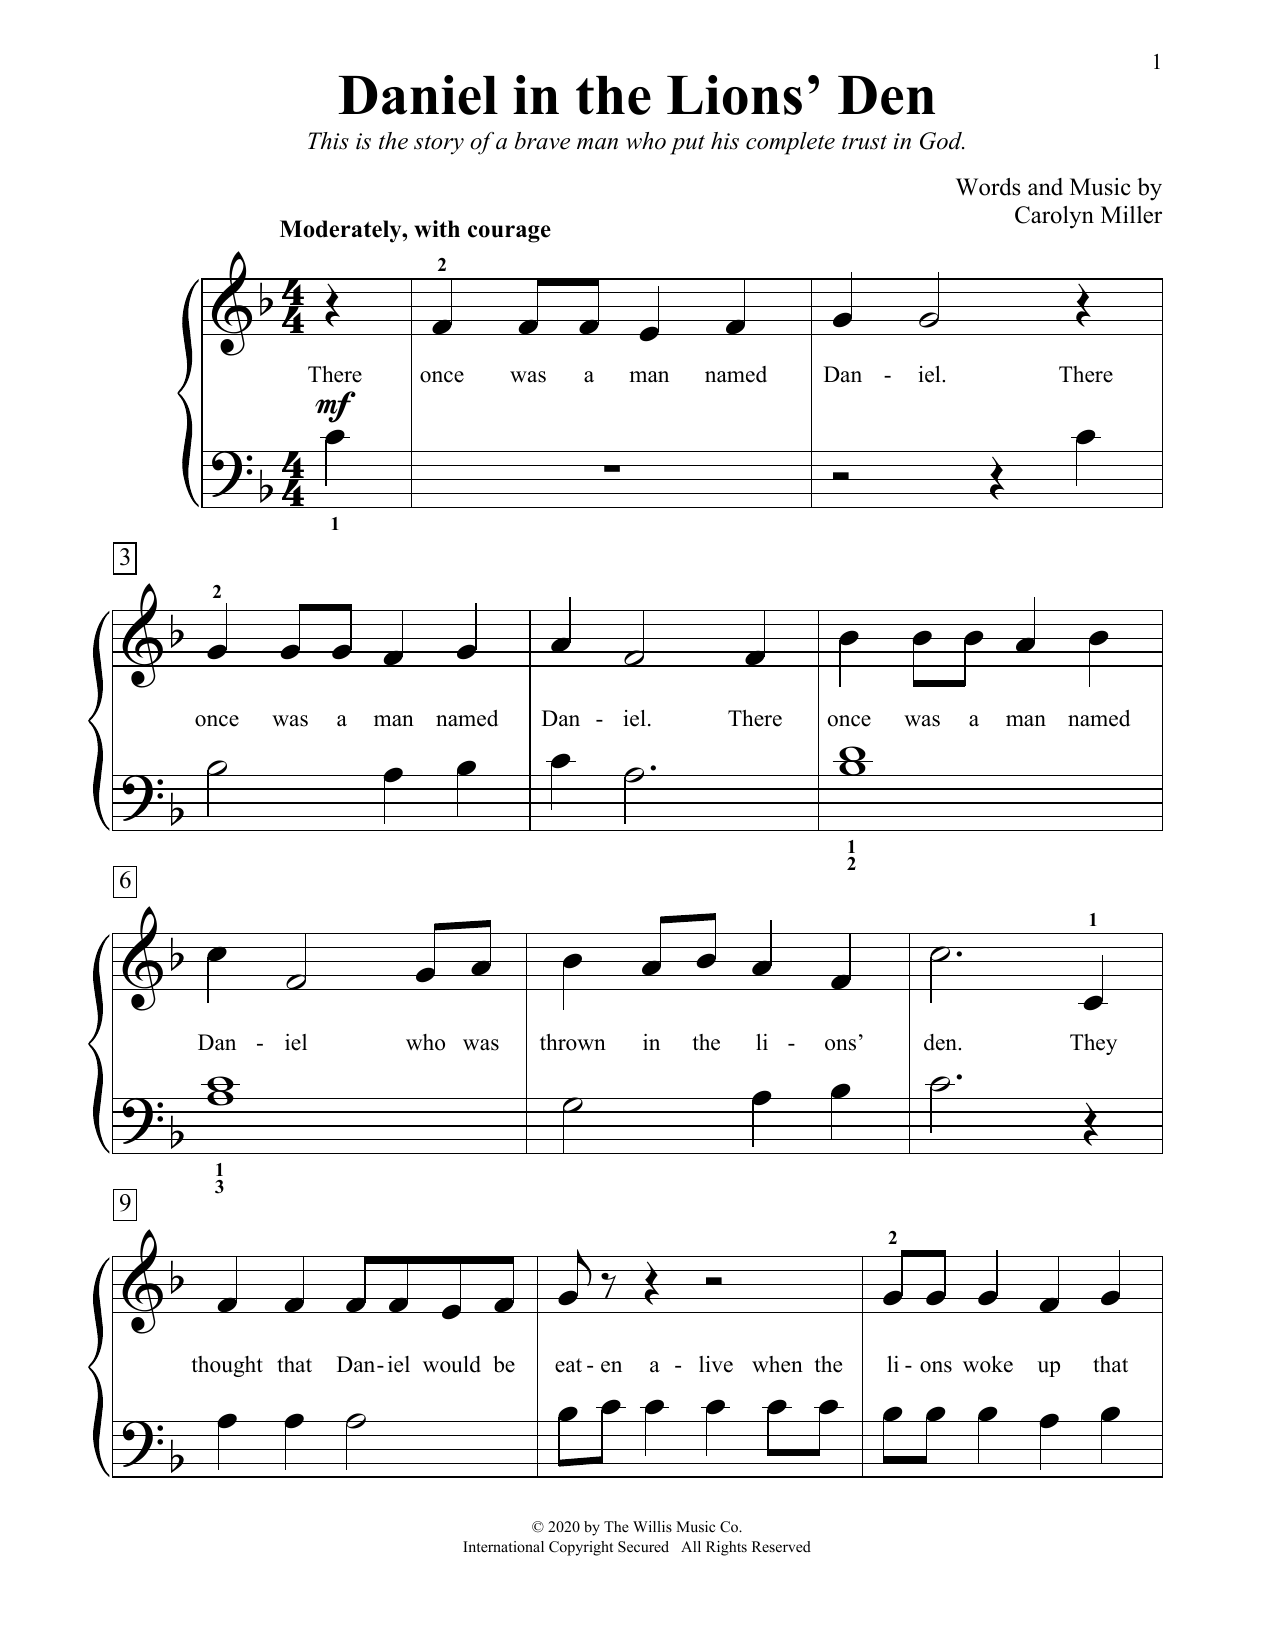 Carolyn Miller Daniel In The Lions' Den sheet music notes and chords. Download Printable PDF.